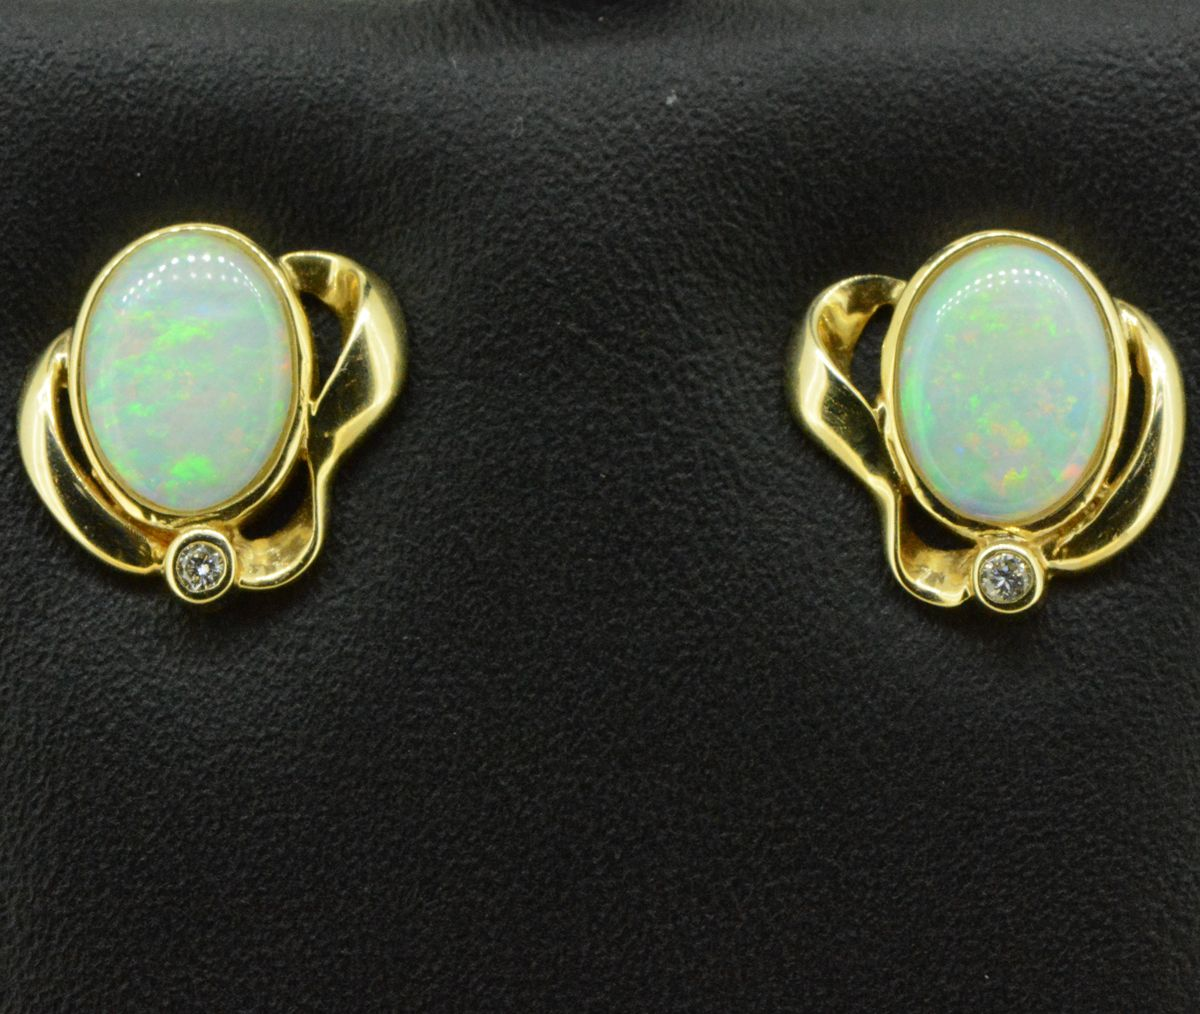 18ct Yellow Gold Solid Opal Earrings with 1 Brilliant Diamond